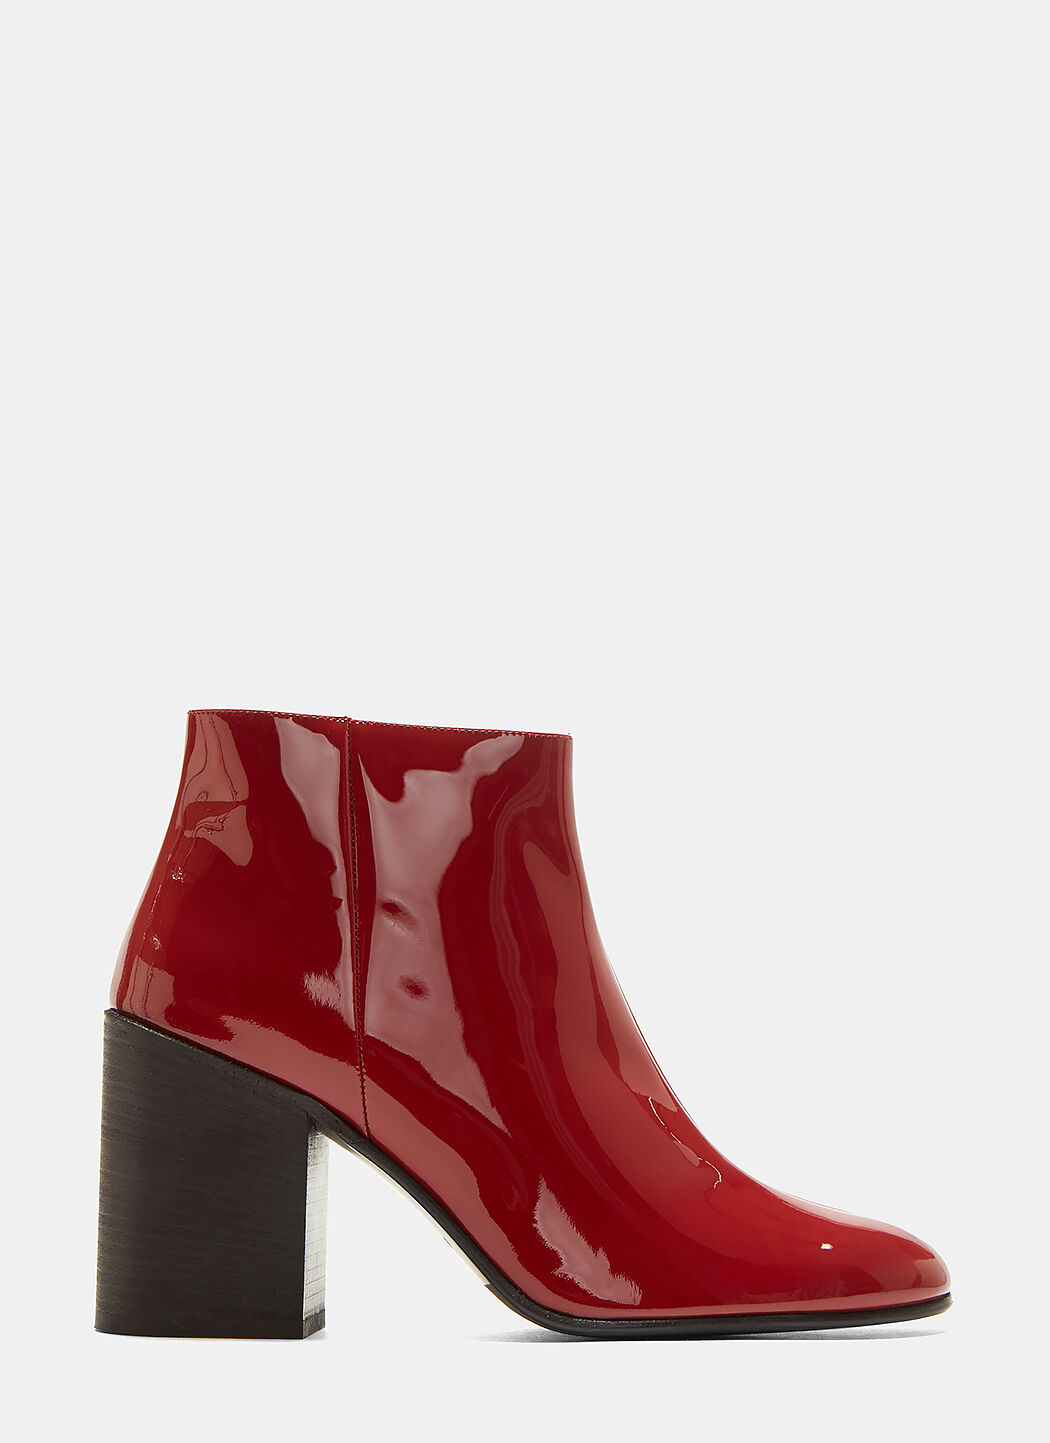 Acne Studios Beth Patent Leather Ankle Boots In Red   ModeSens 83389933dc0